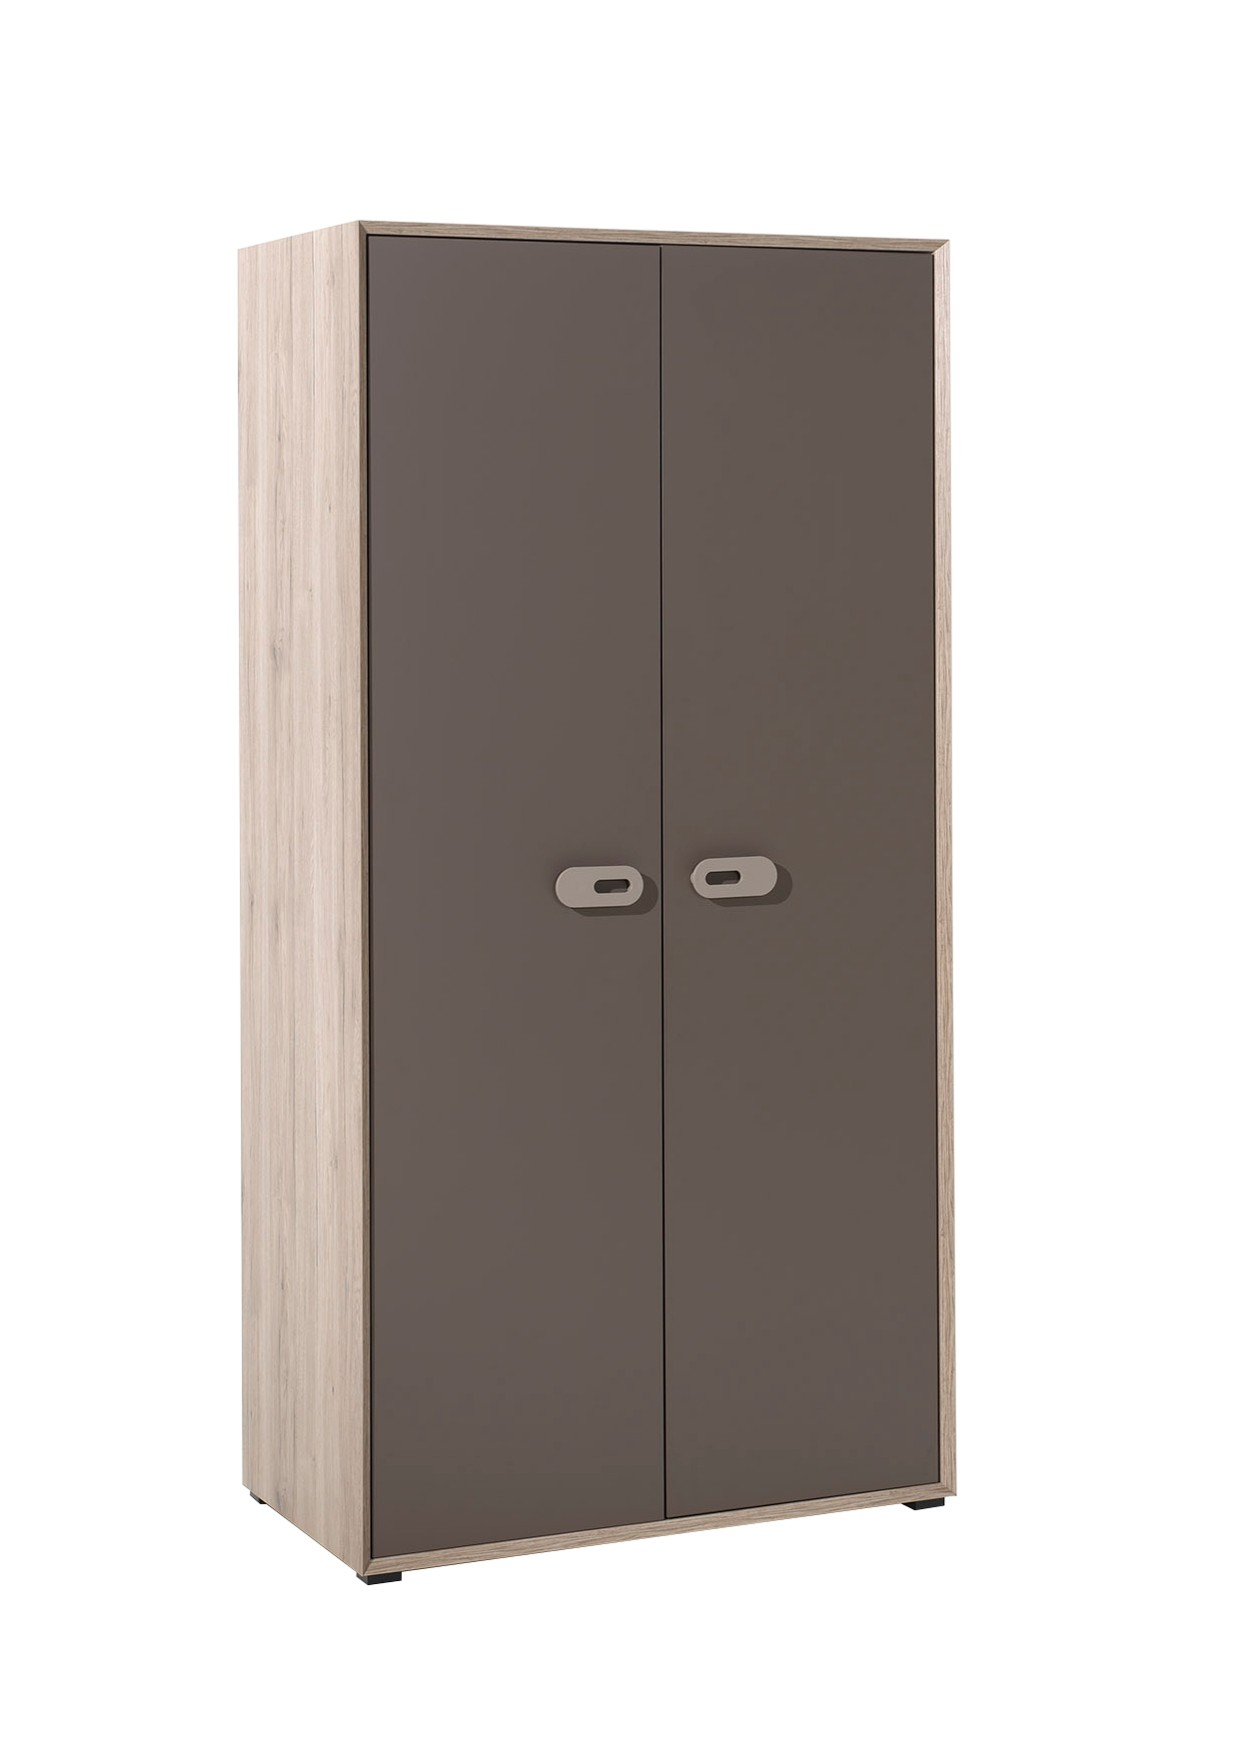 kleiderschrank emiel 2 t rig eiche san remo braun kinder kleiderschr nke. Black Bedroom Furniture Sets. Home Design Ideas